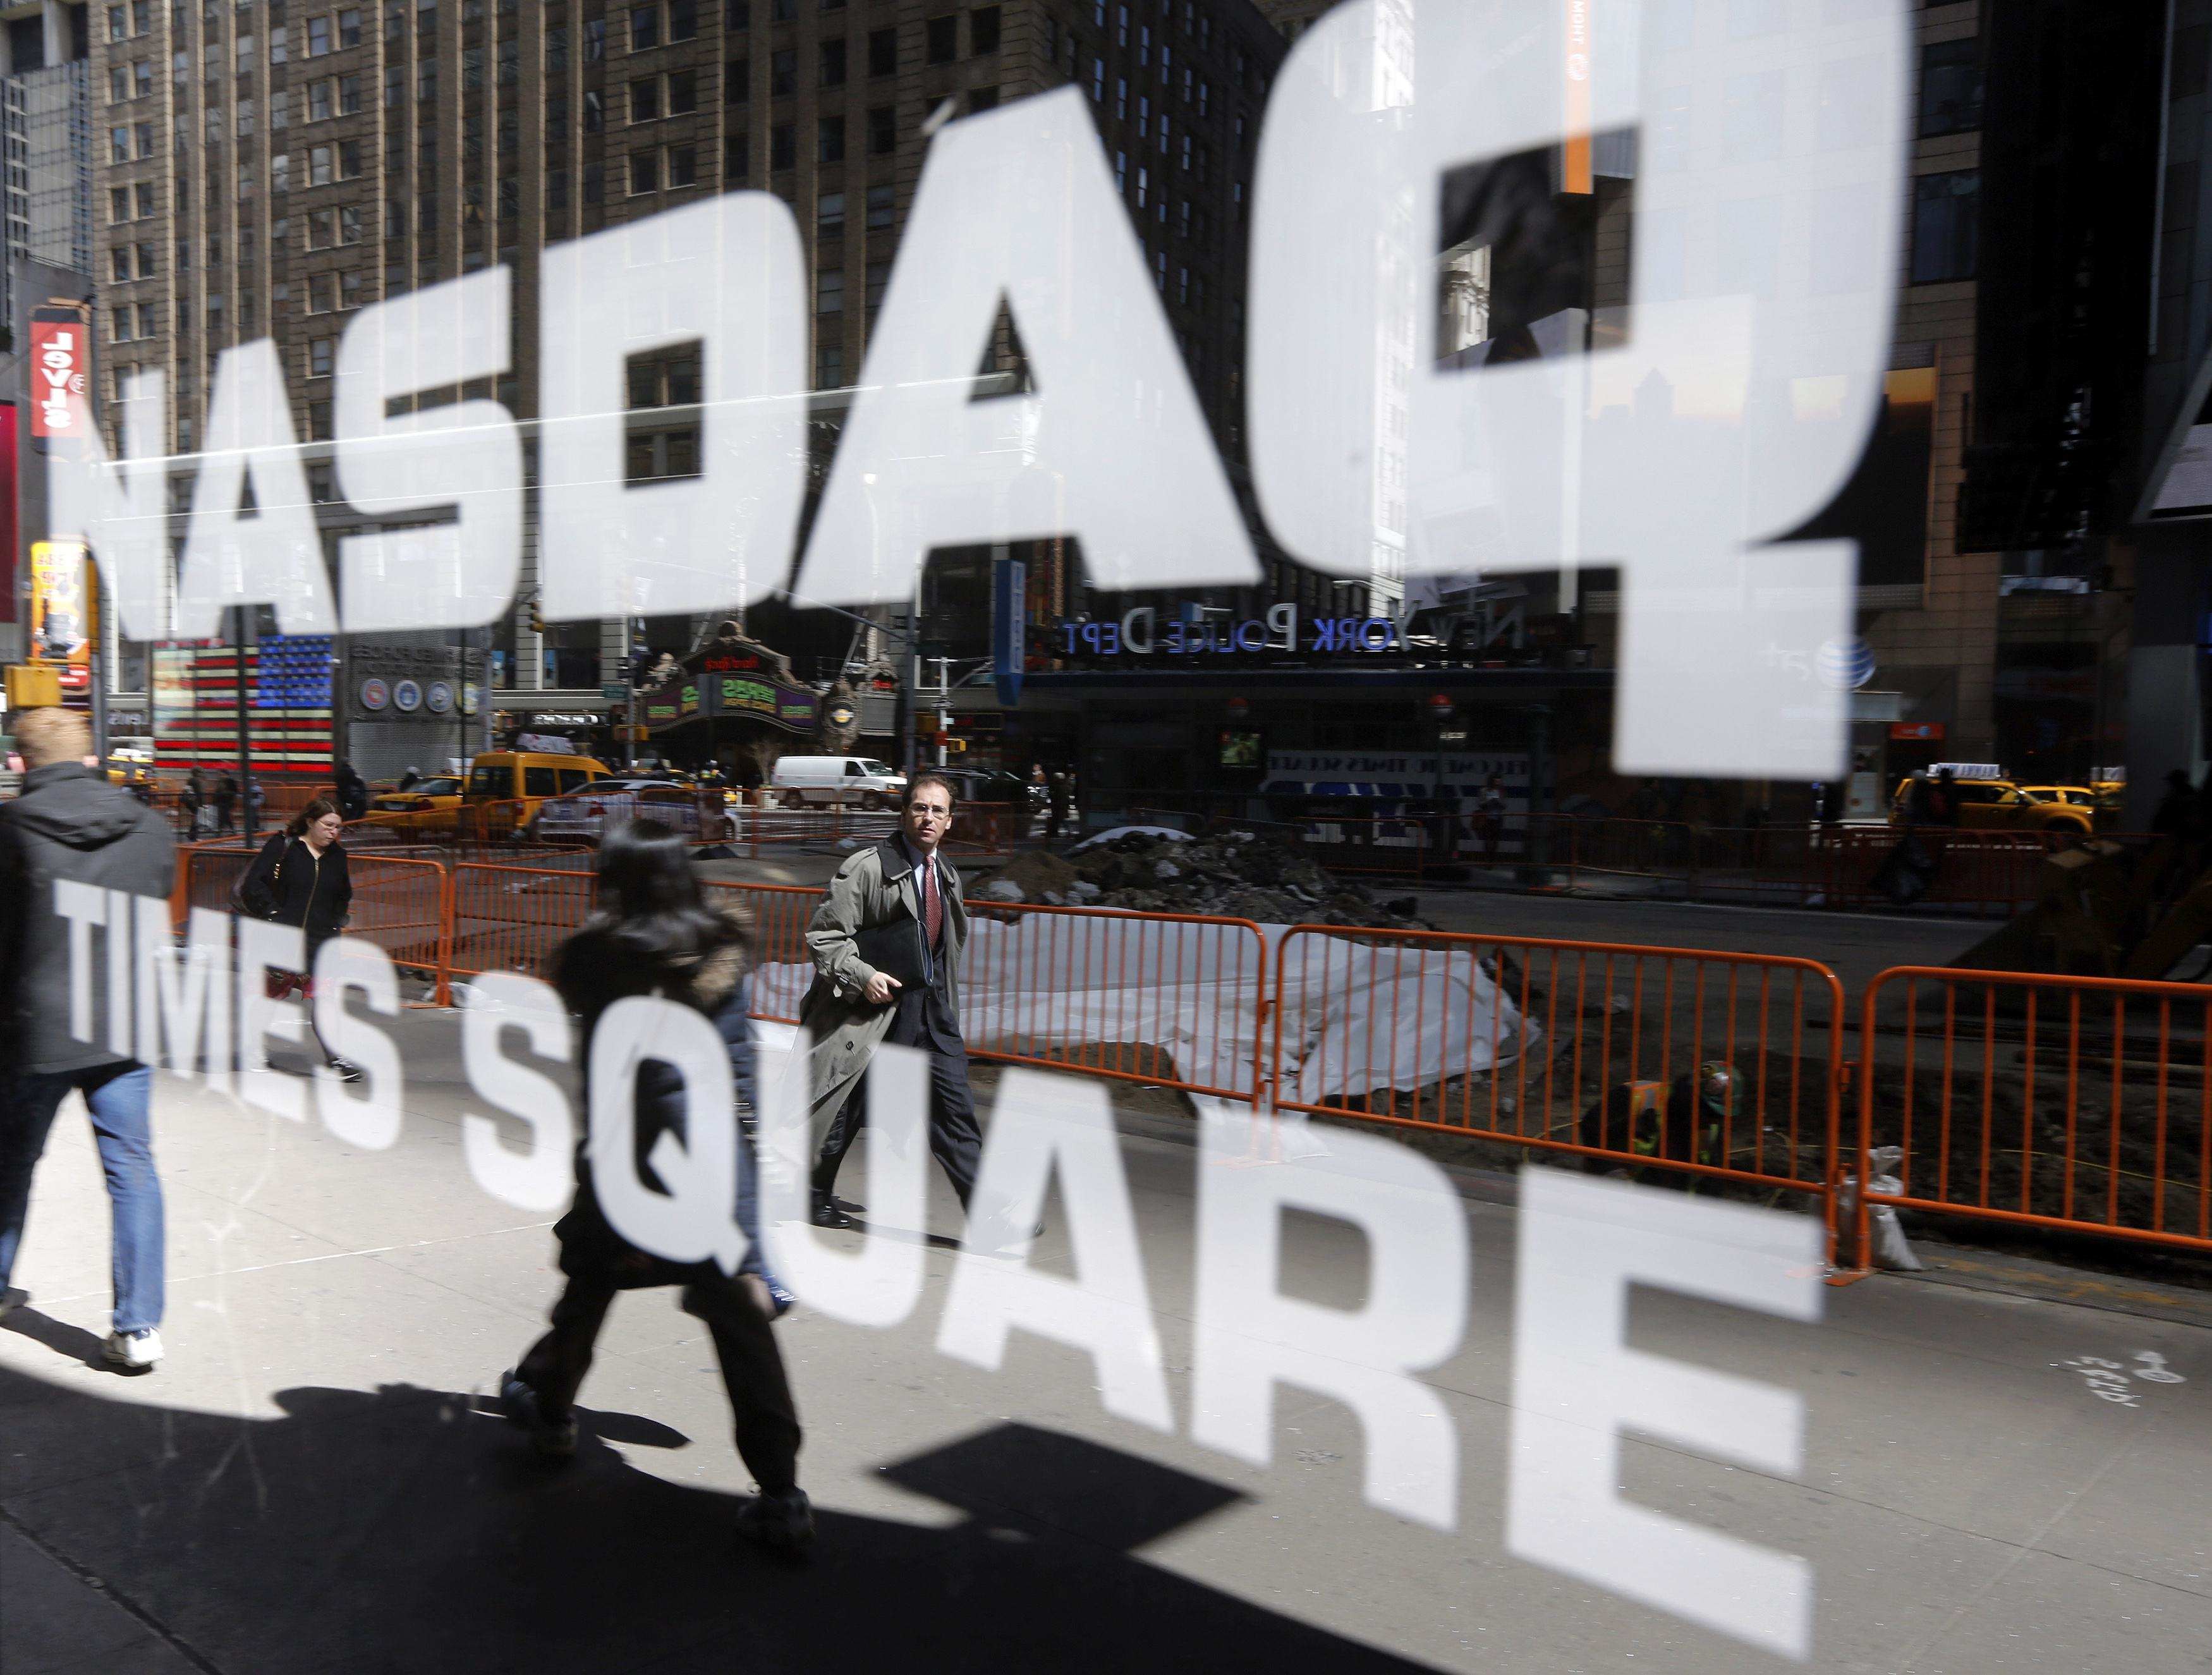 The Nasdaq logo is seen on the exterior of the Nasdaq MarketSite in New York